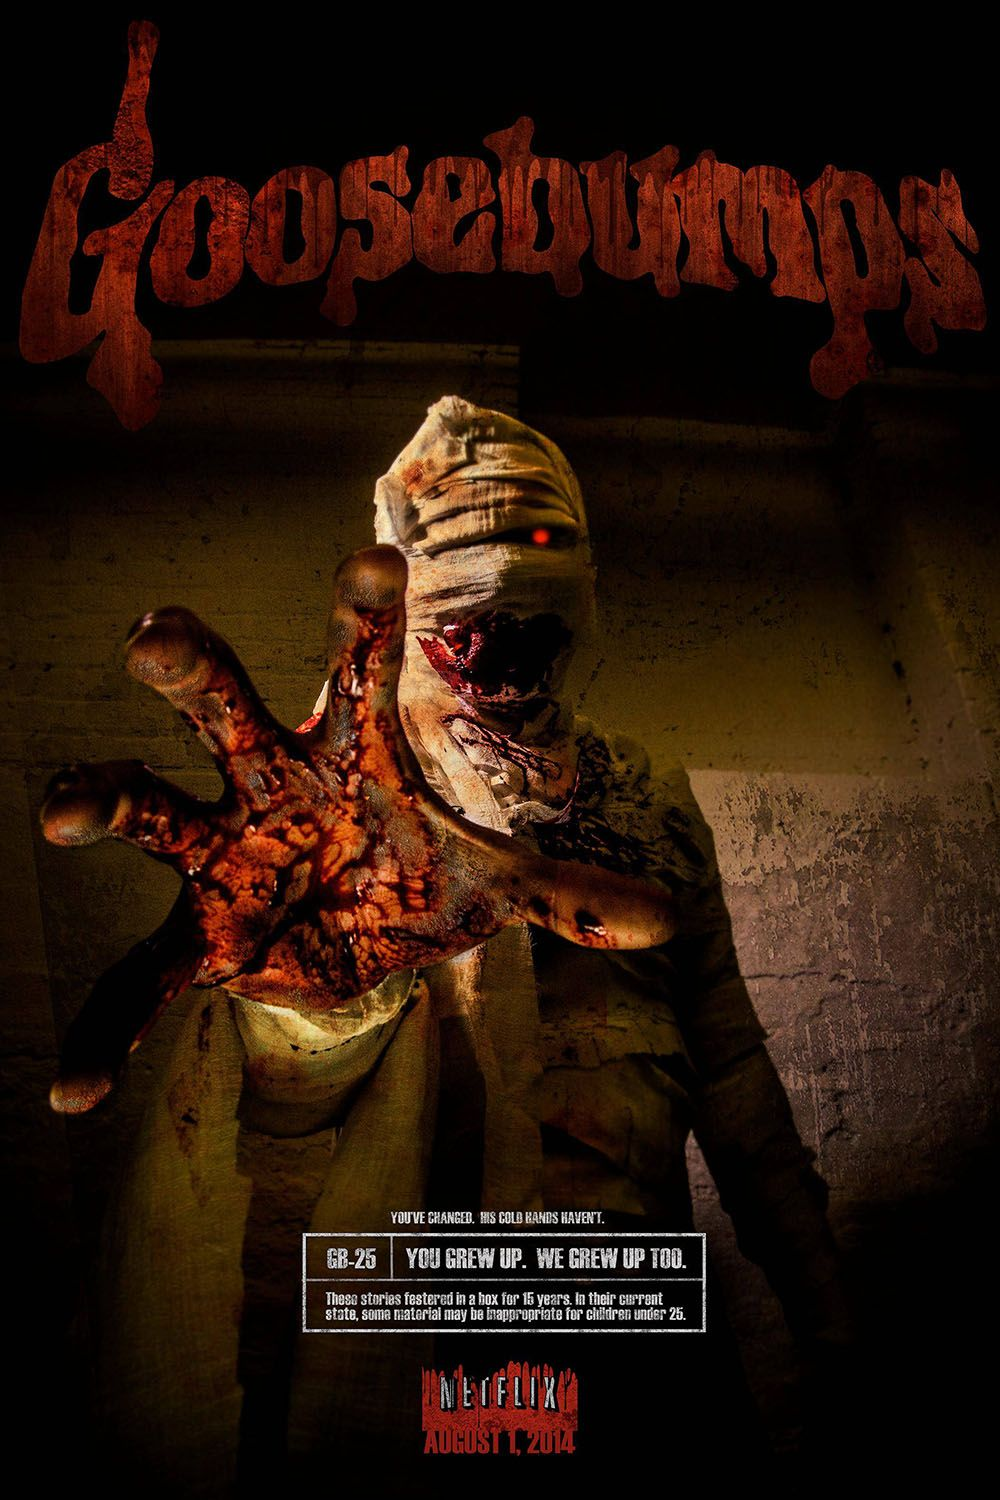 Goosebumps Night Of Scares Screenshots Pictures Wallpapers 600x600 38